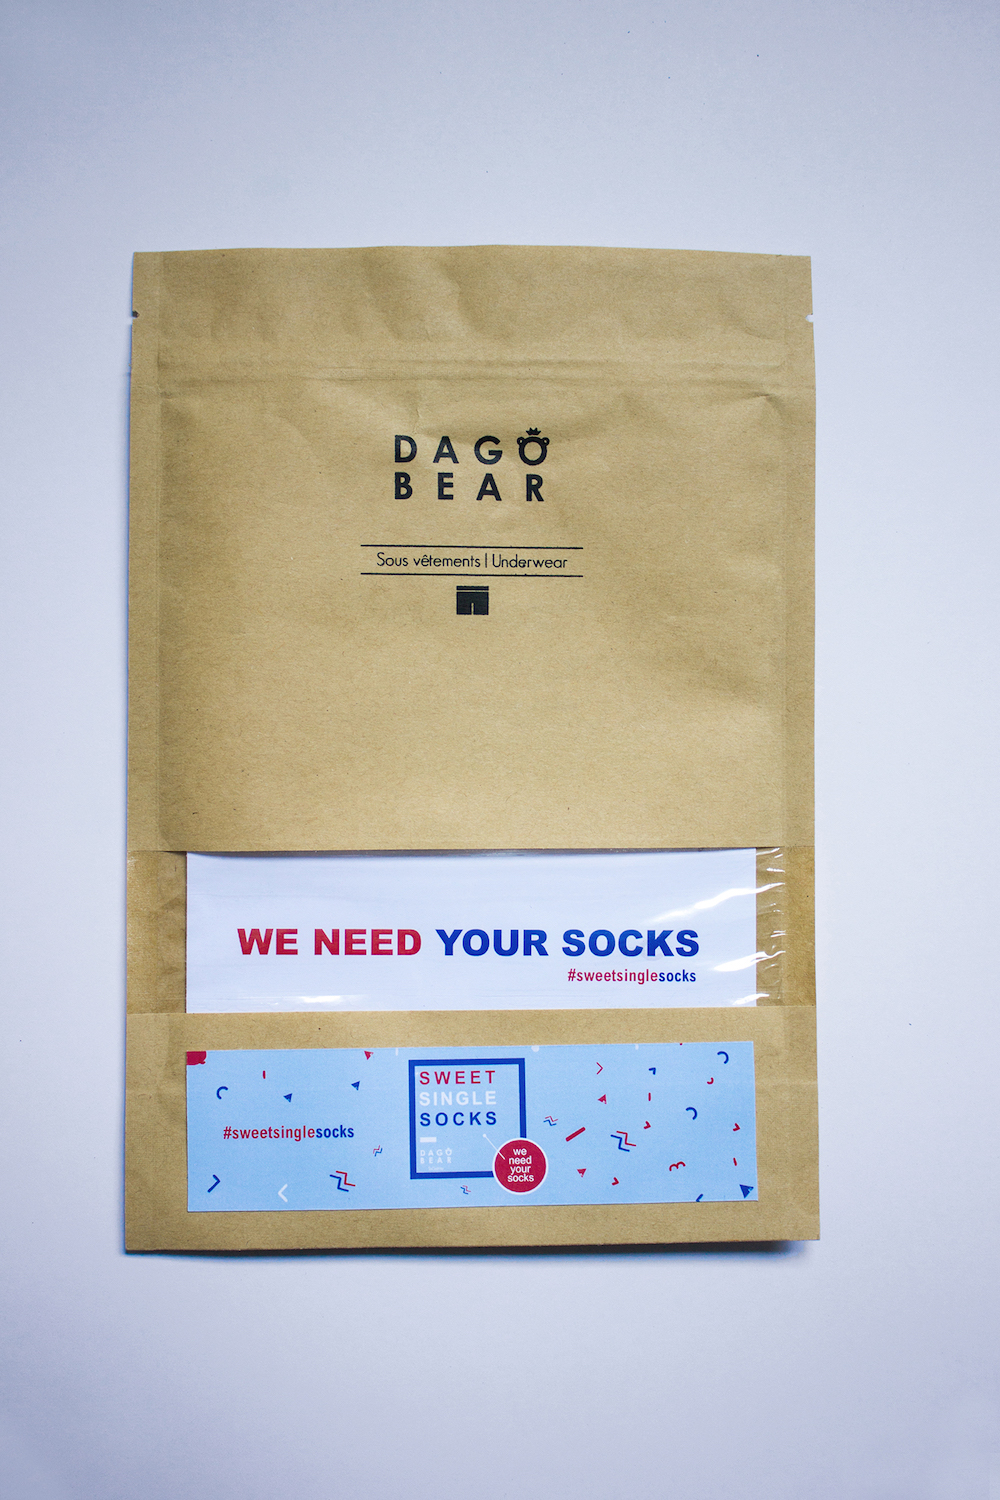 Dagobear-Sweet-Single-Socks-Event-Environement-Agence-Grey-Paris-Ecologie-Habit-Chaussette-2016-Pub-Publicité-Campagne-Video-Ad-Advertising-TBTC-G-Communication-04